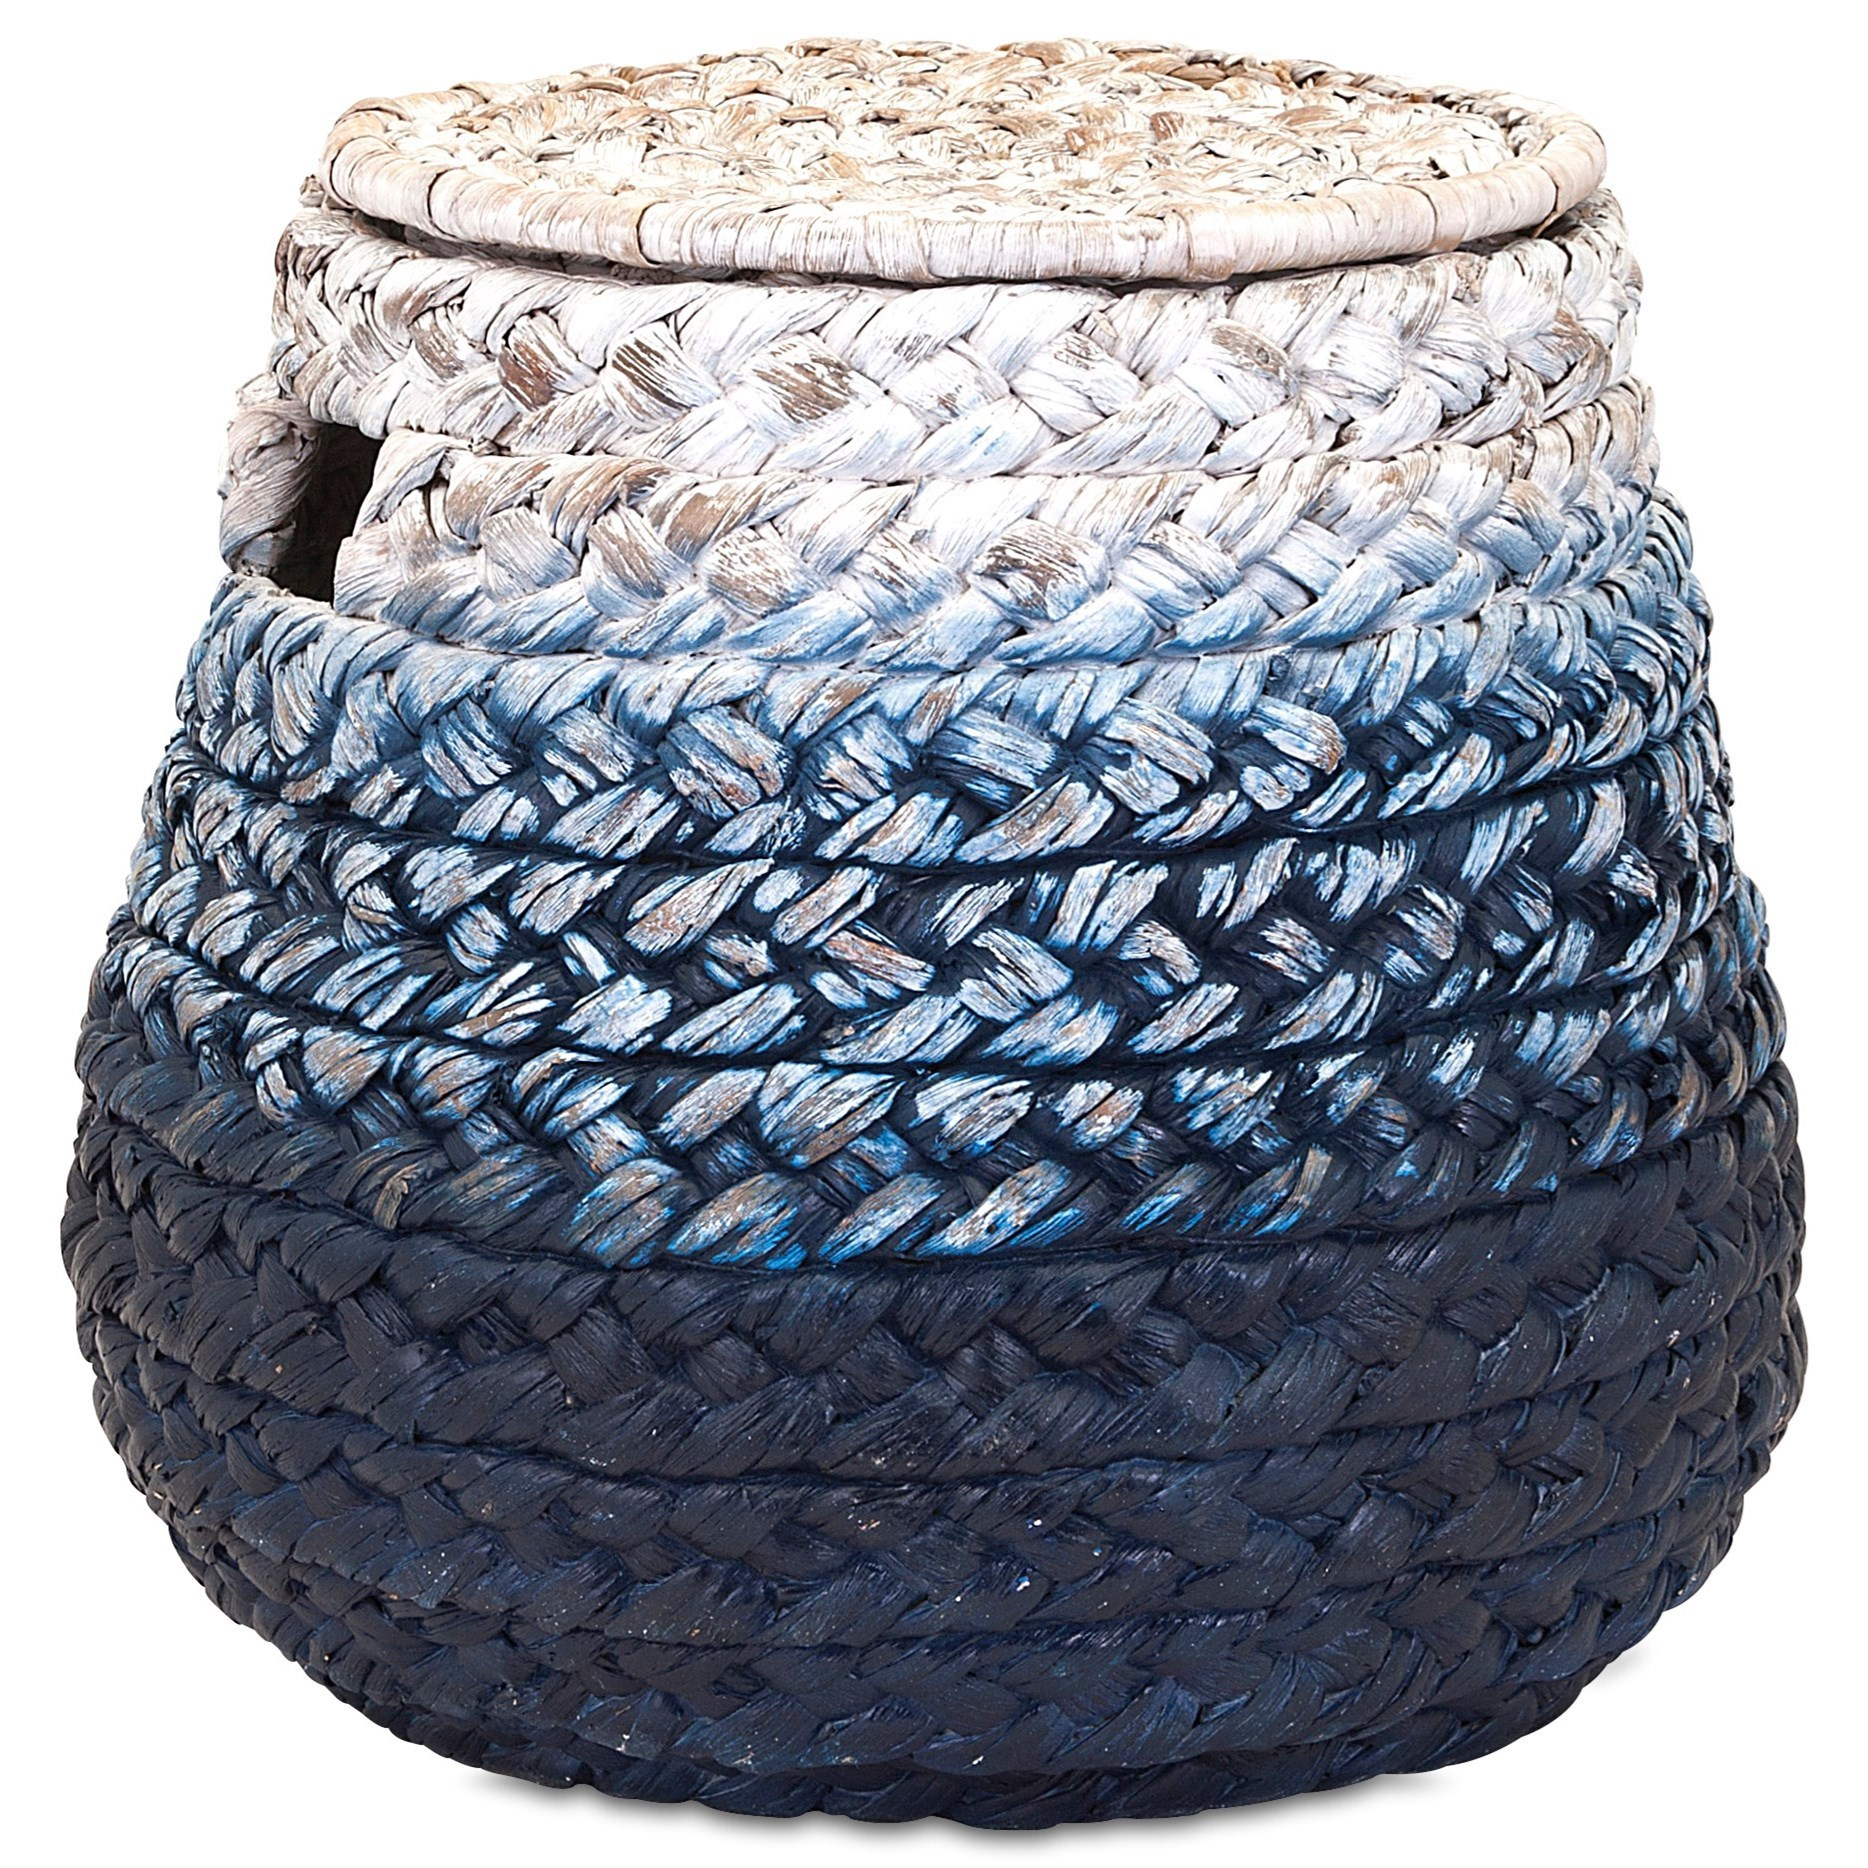 Baskets Cascade Woven Water Hyacinth Basket by IMAX Worldwide Home at Alison Craig Home Furnishings